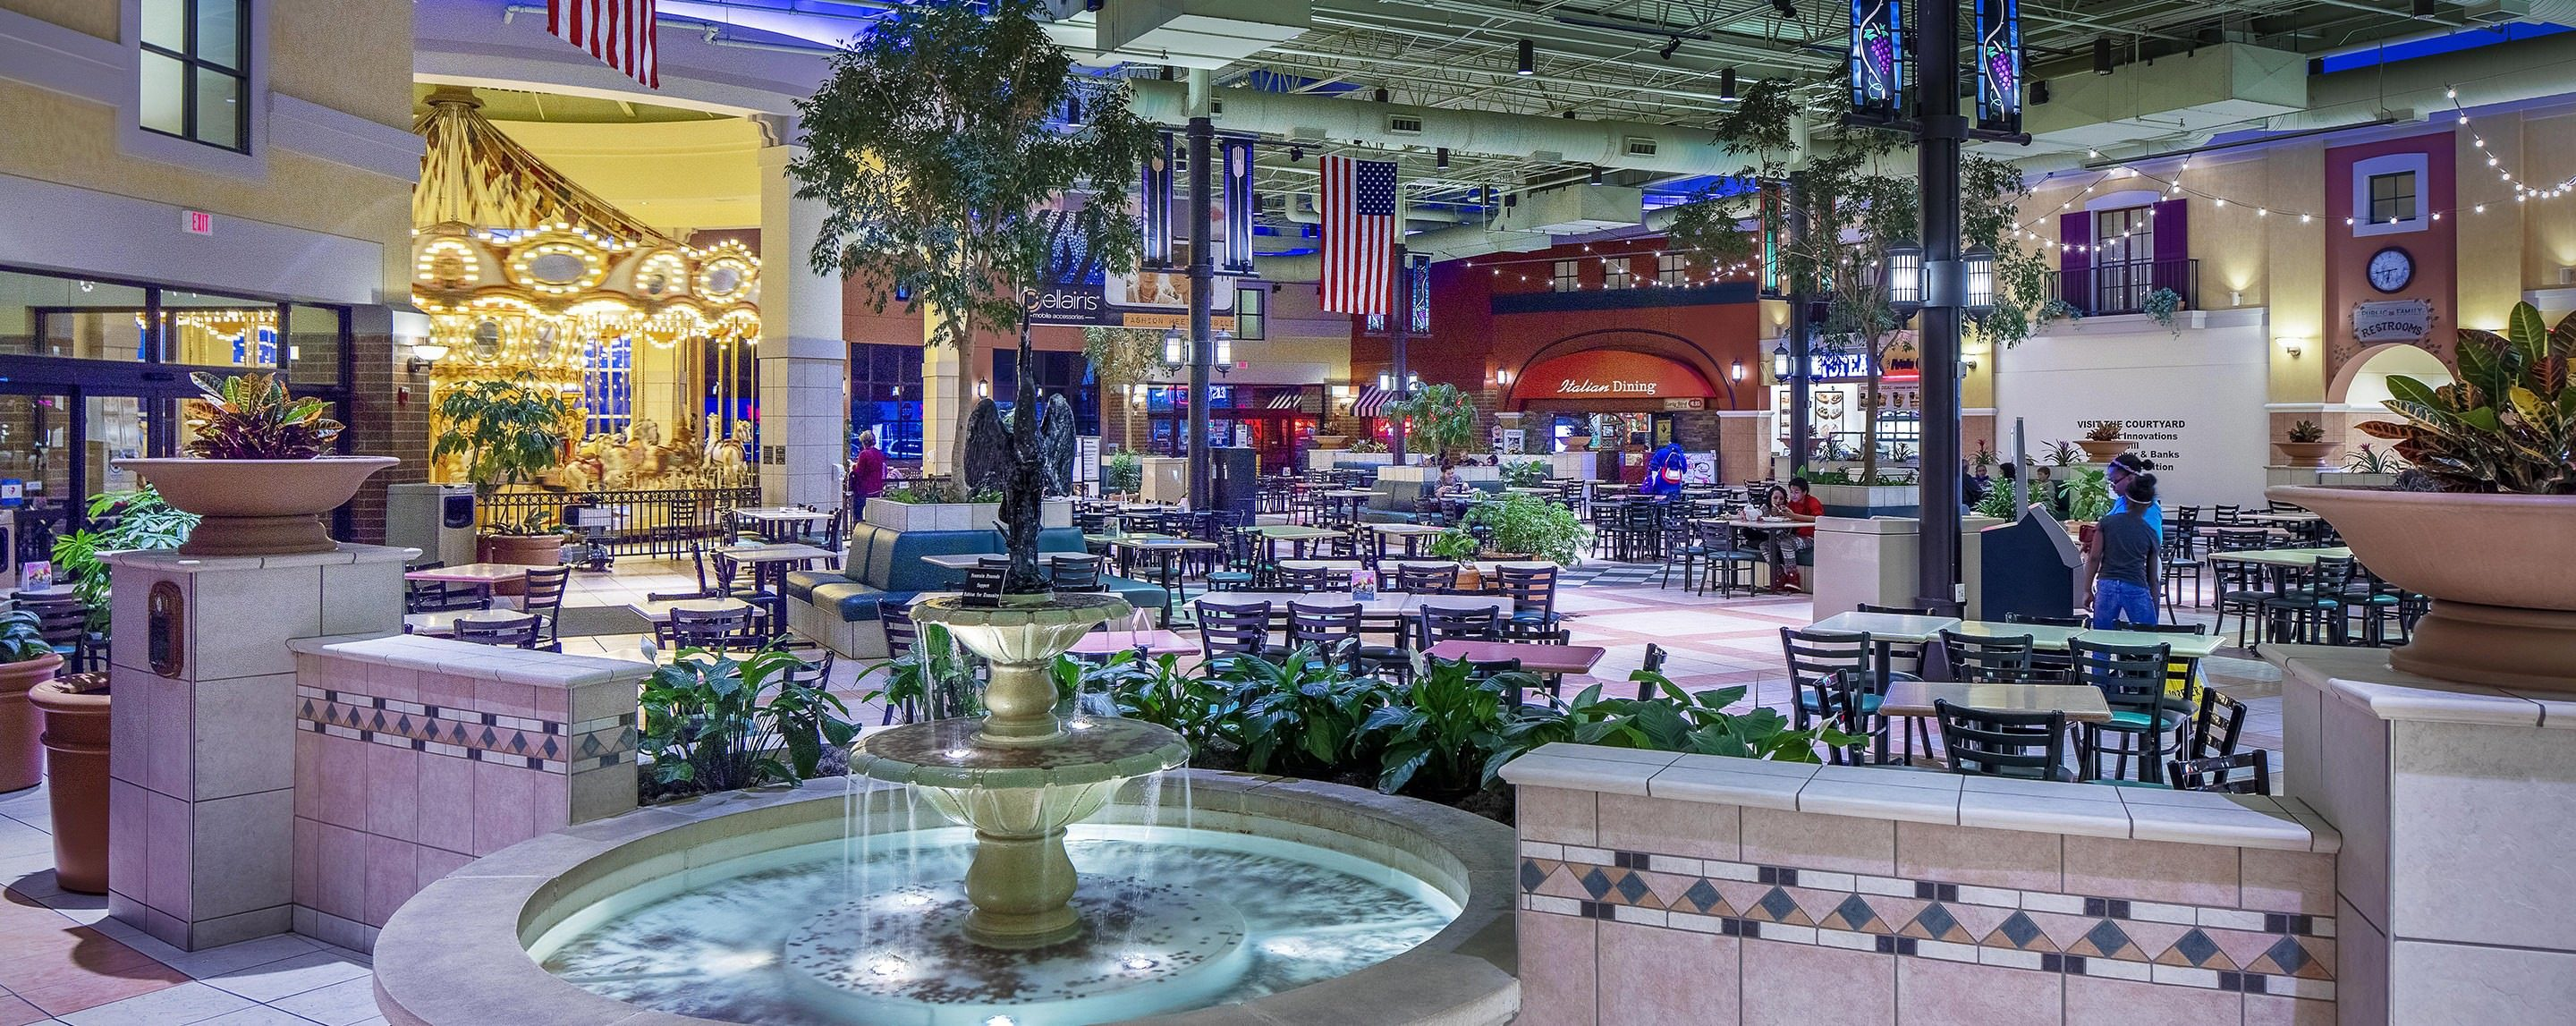 A fountain stands in front of a food court in an indoor mall. A carousel is lit in the background.